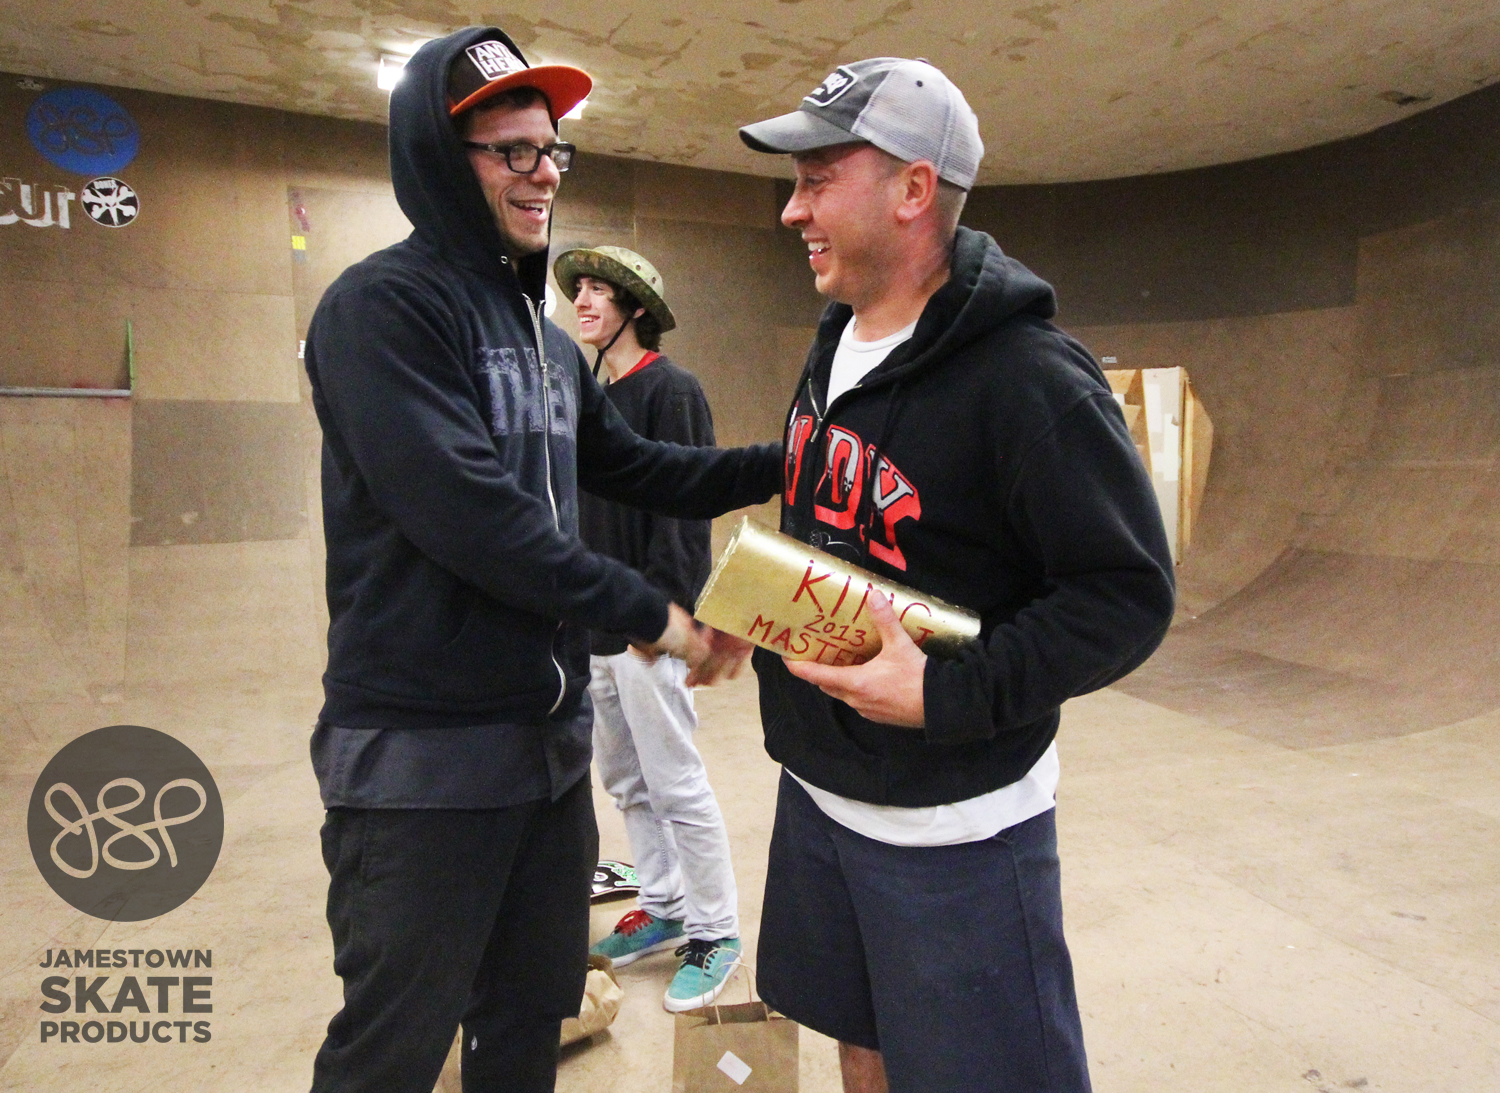 Masters Division KOTR Mark Buccigrossi, getting a job well done from Chet.